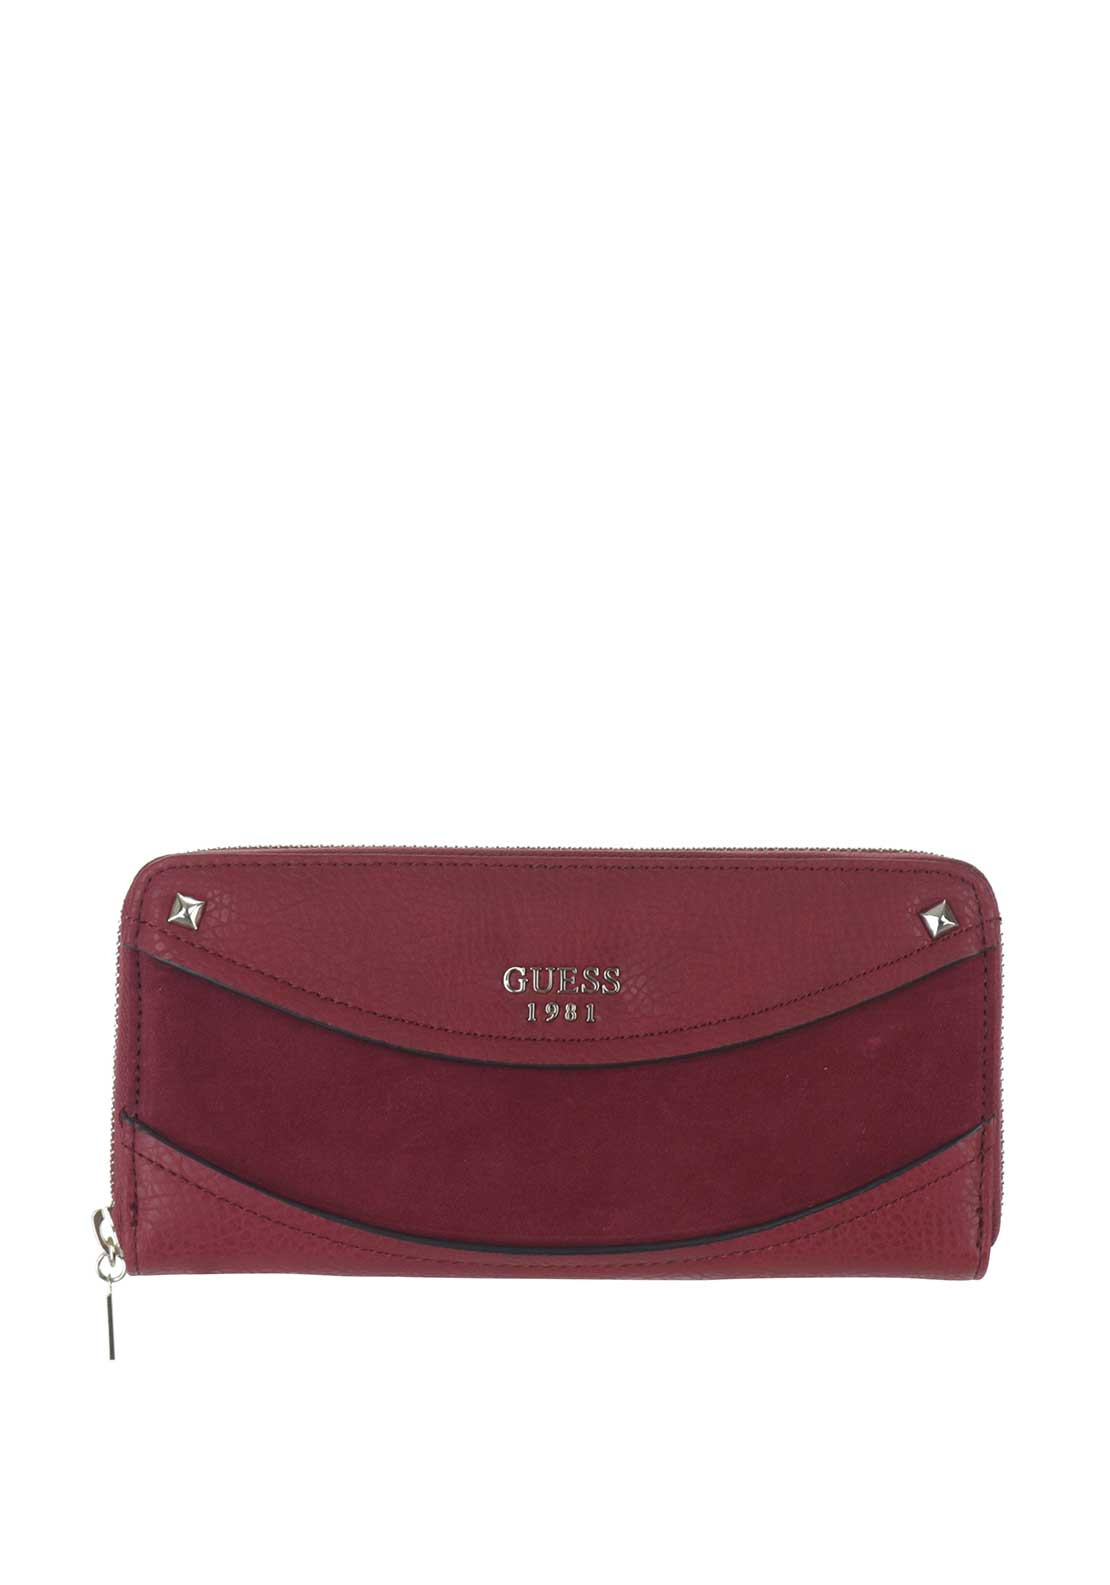 Guess Solene SLG Suede Insert Zip Around Purse, Bordeaux